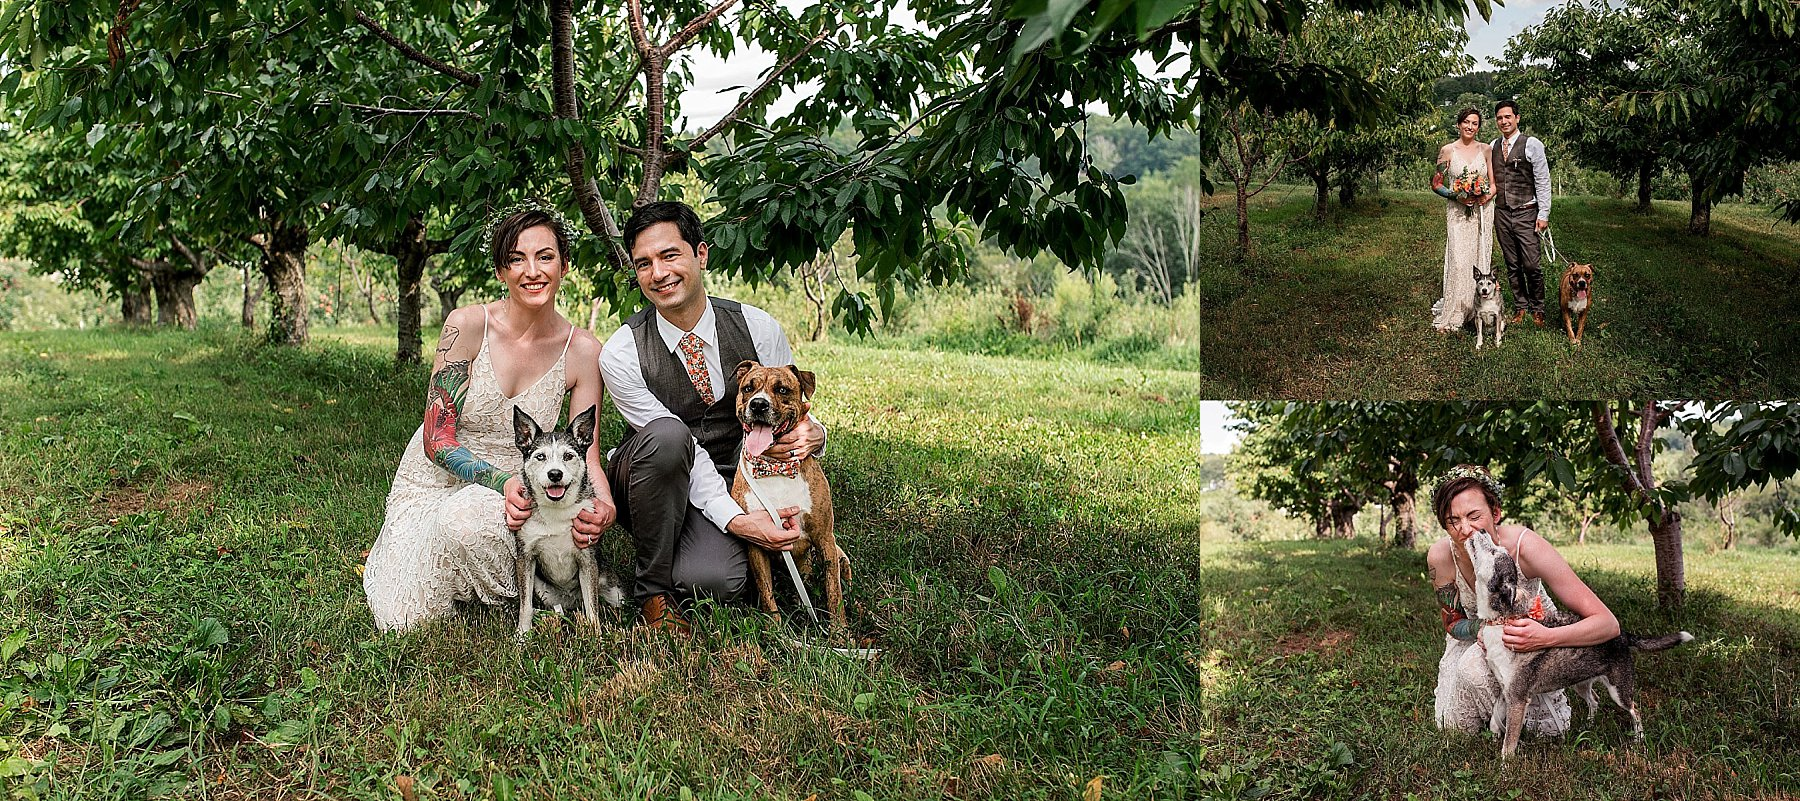 Connecticut bride and groom with their dogs in their wedding day